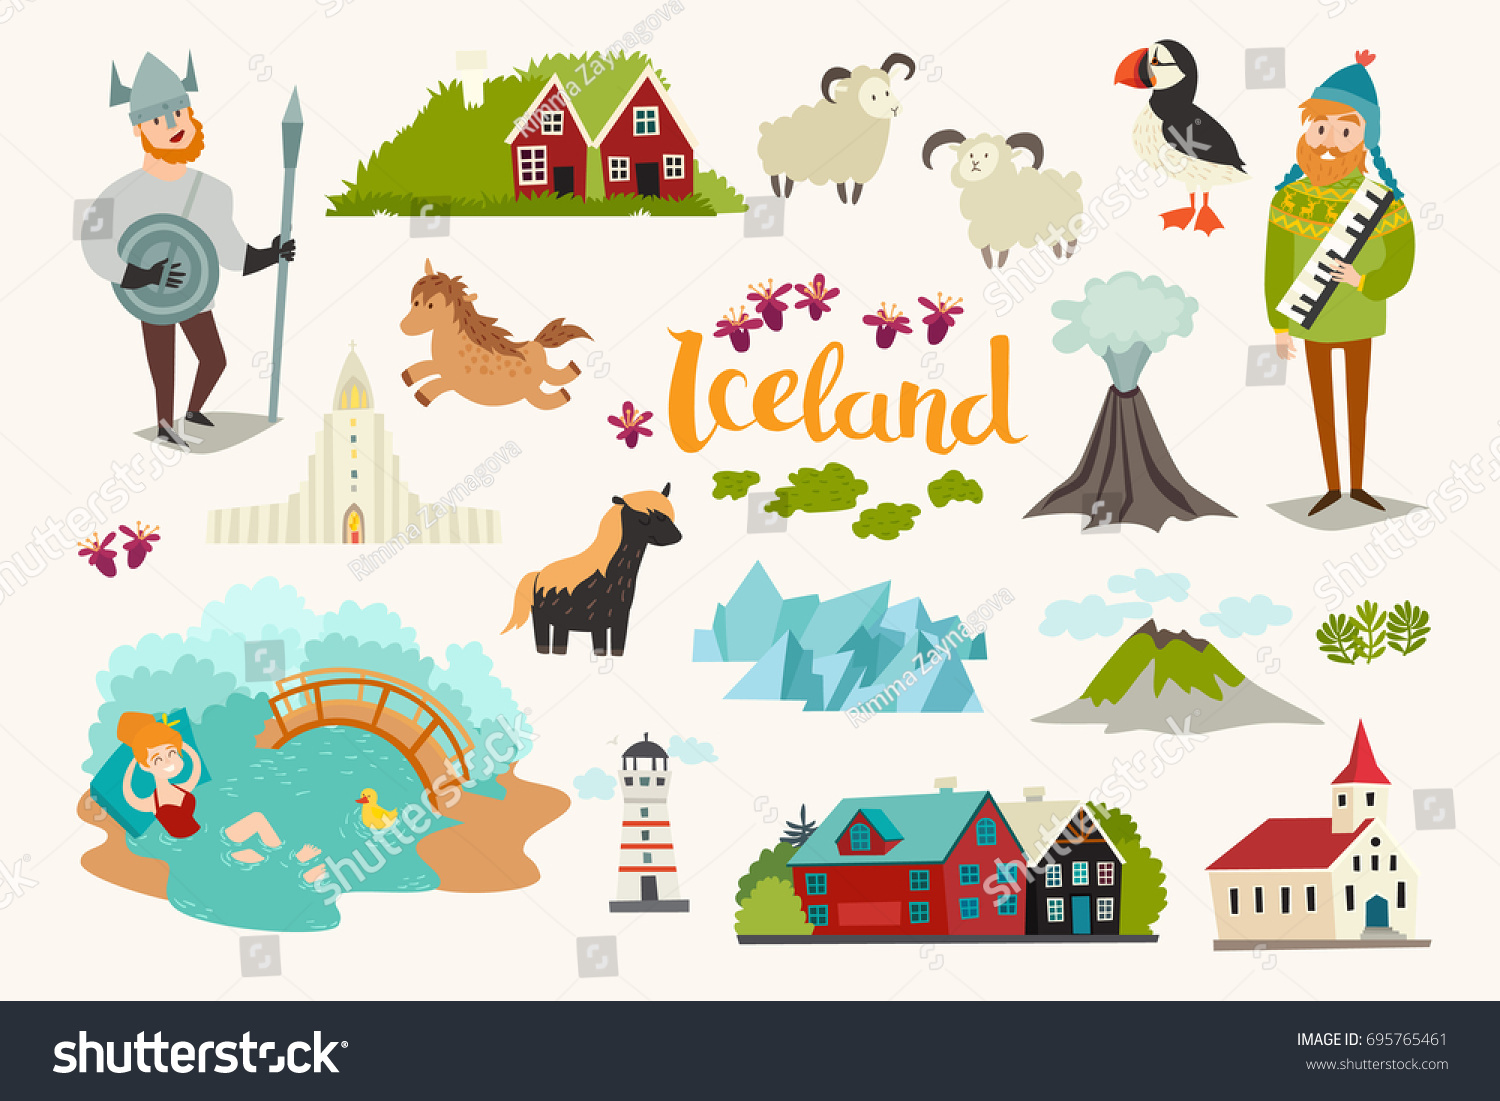 Iceland Landmarks Vector Icons Set Illustrated Stock Vector (Royalty ...